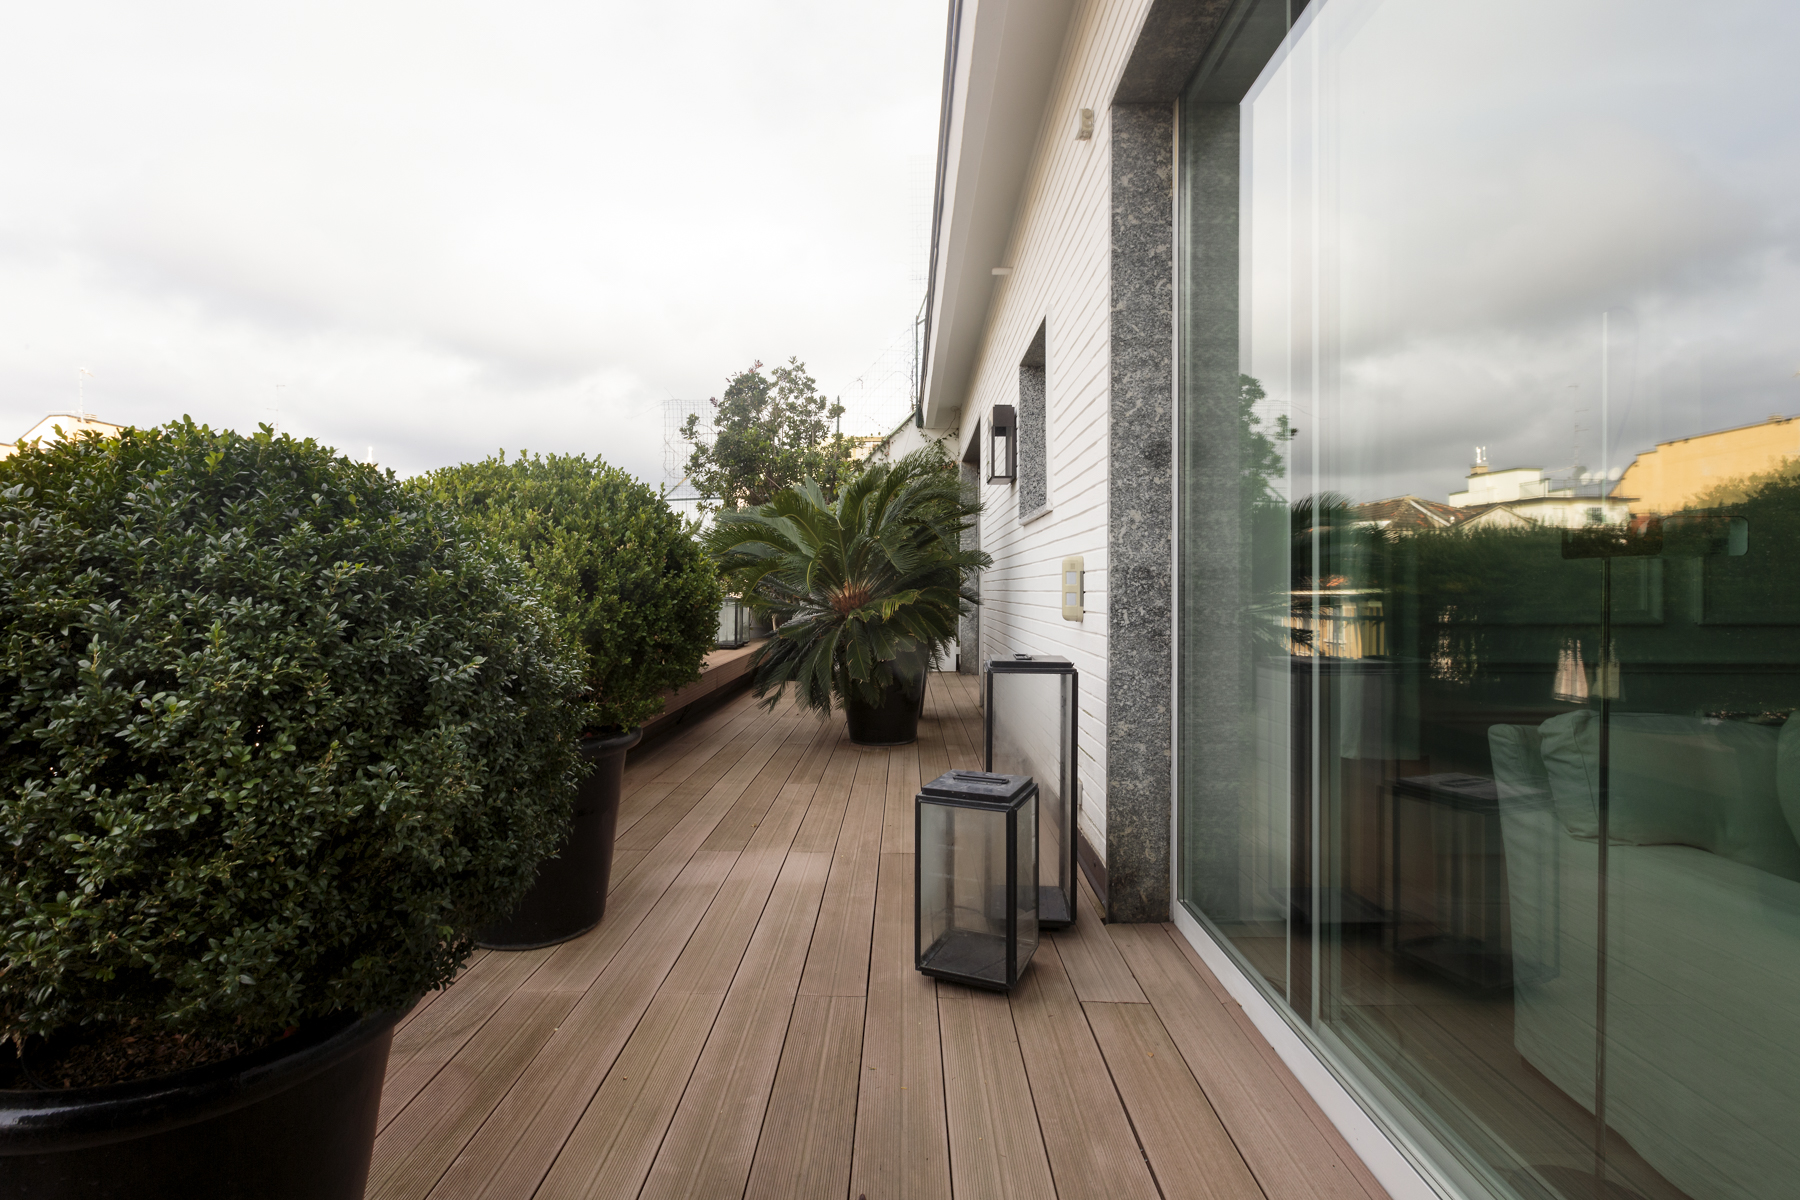 Additional photo for property listing at Splendid penthouse with breathtaking view of the city Via Rossini Milano, Milan 20122 Italy